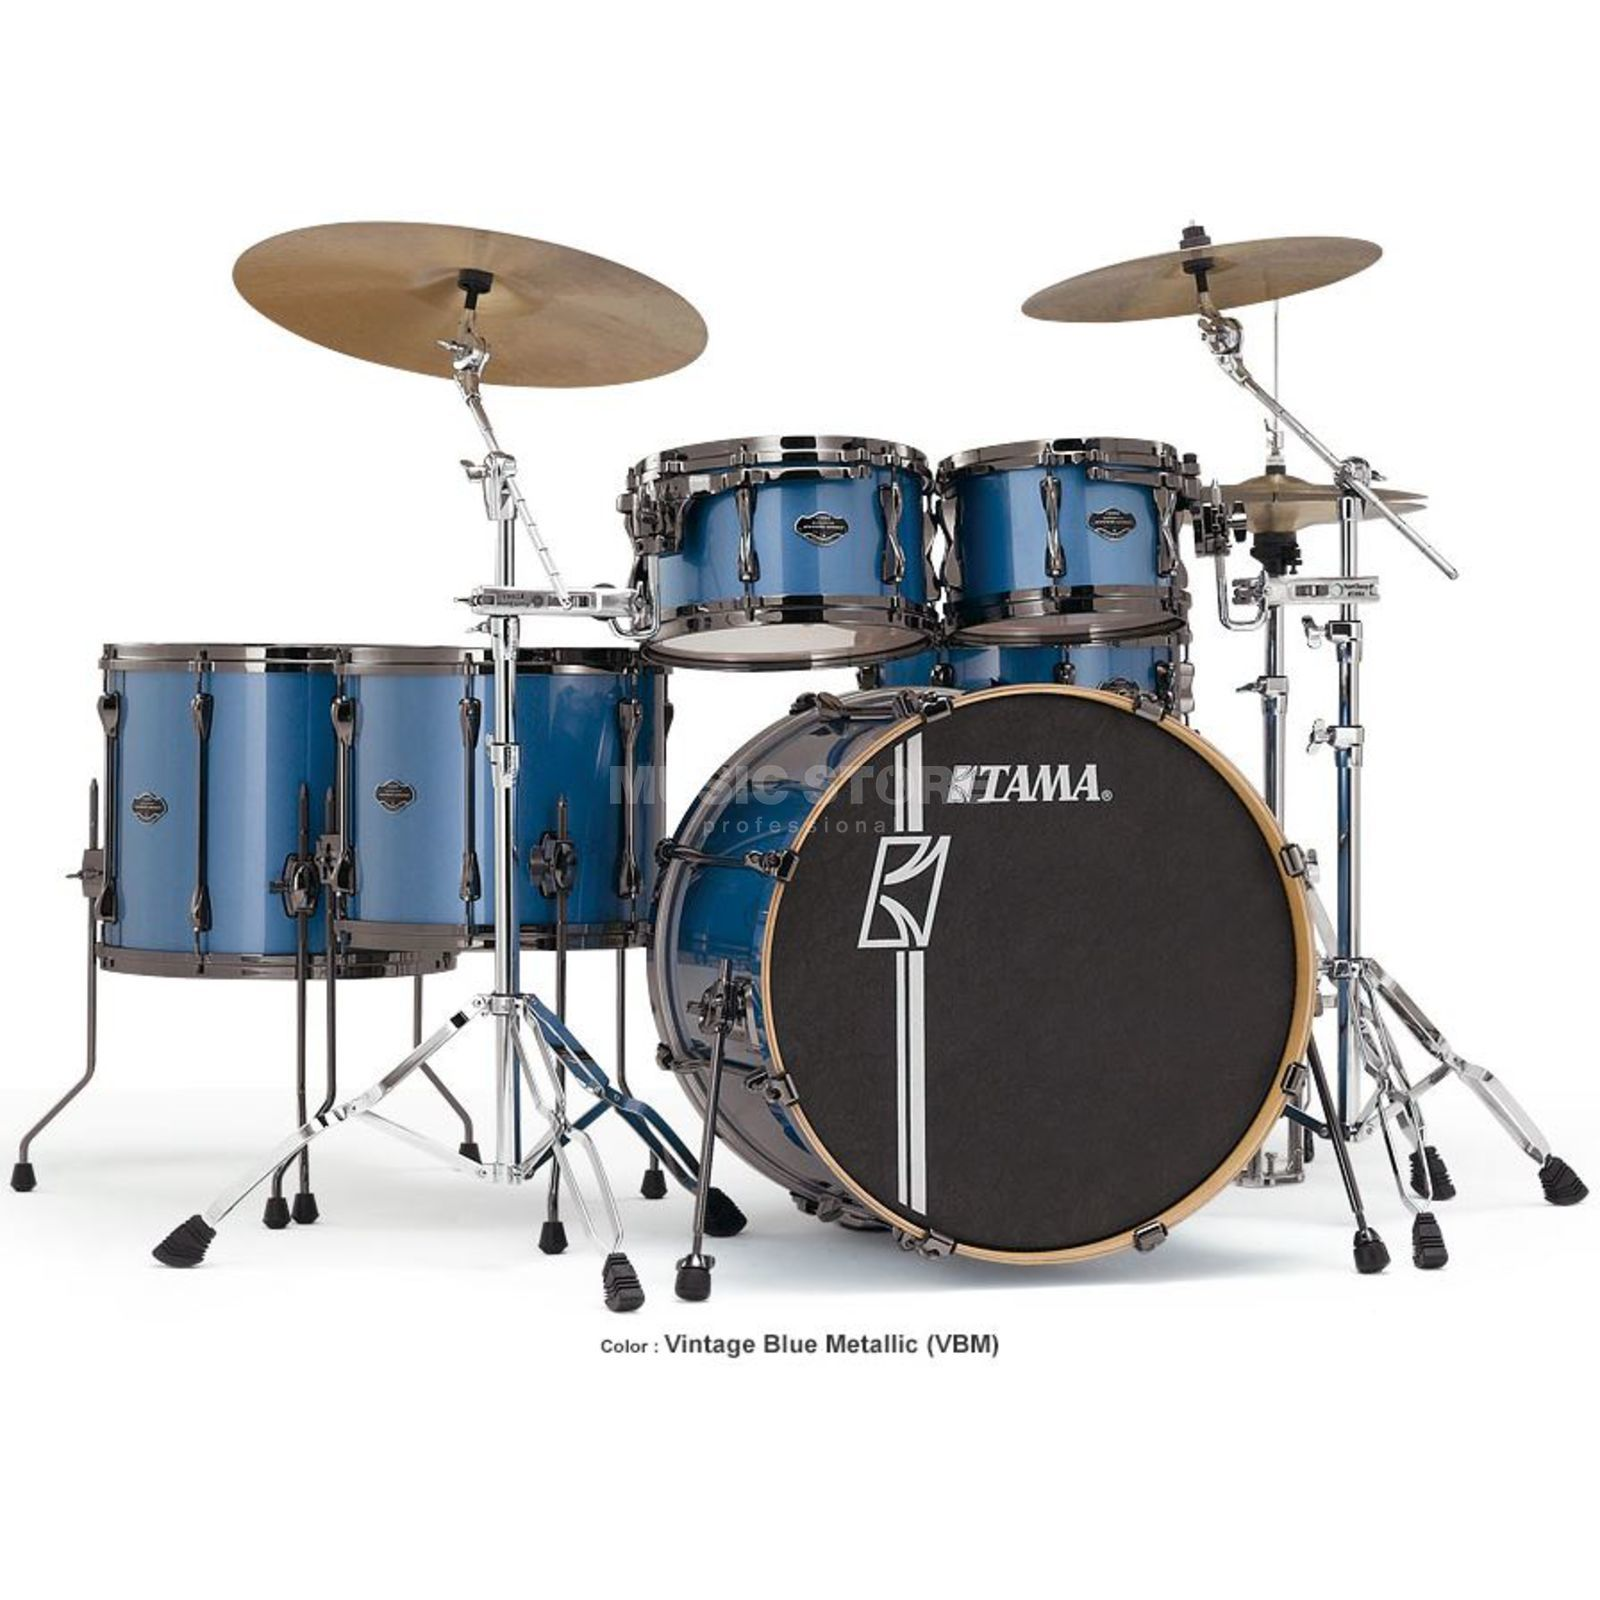 Tama Superstar HD Maple ML52HZBN, Vintage Blue Metallic, VBM Produktbild